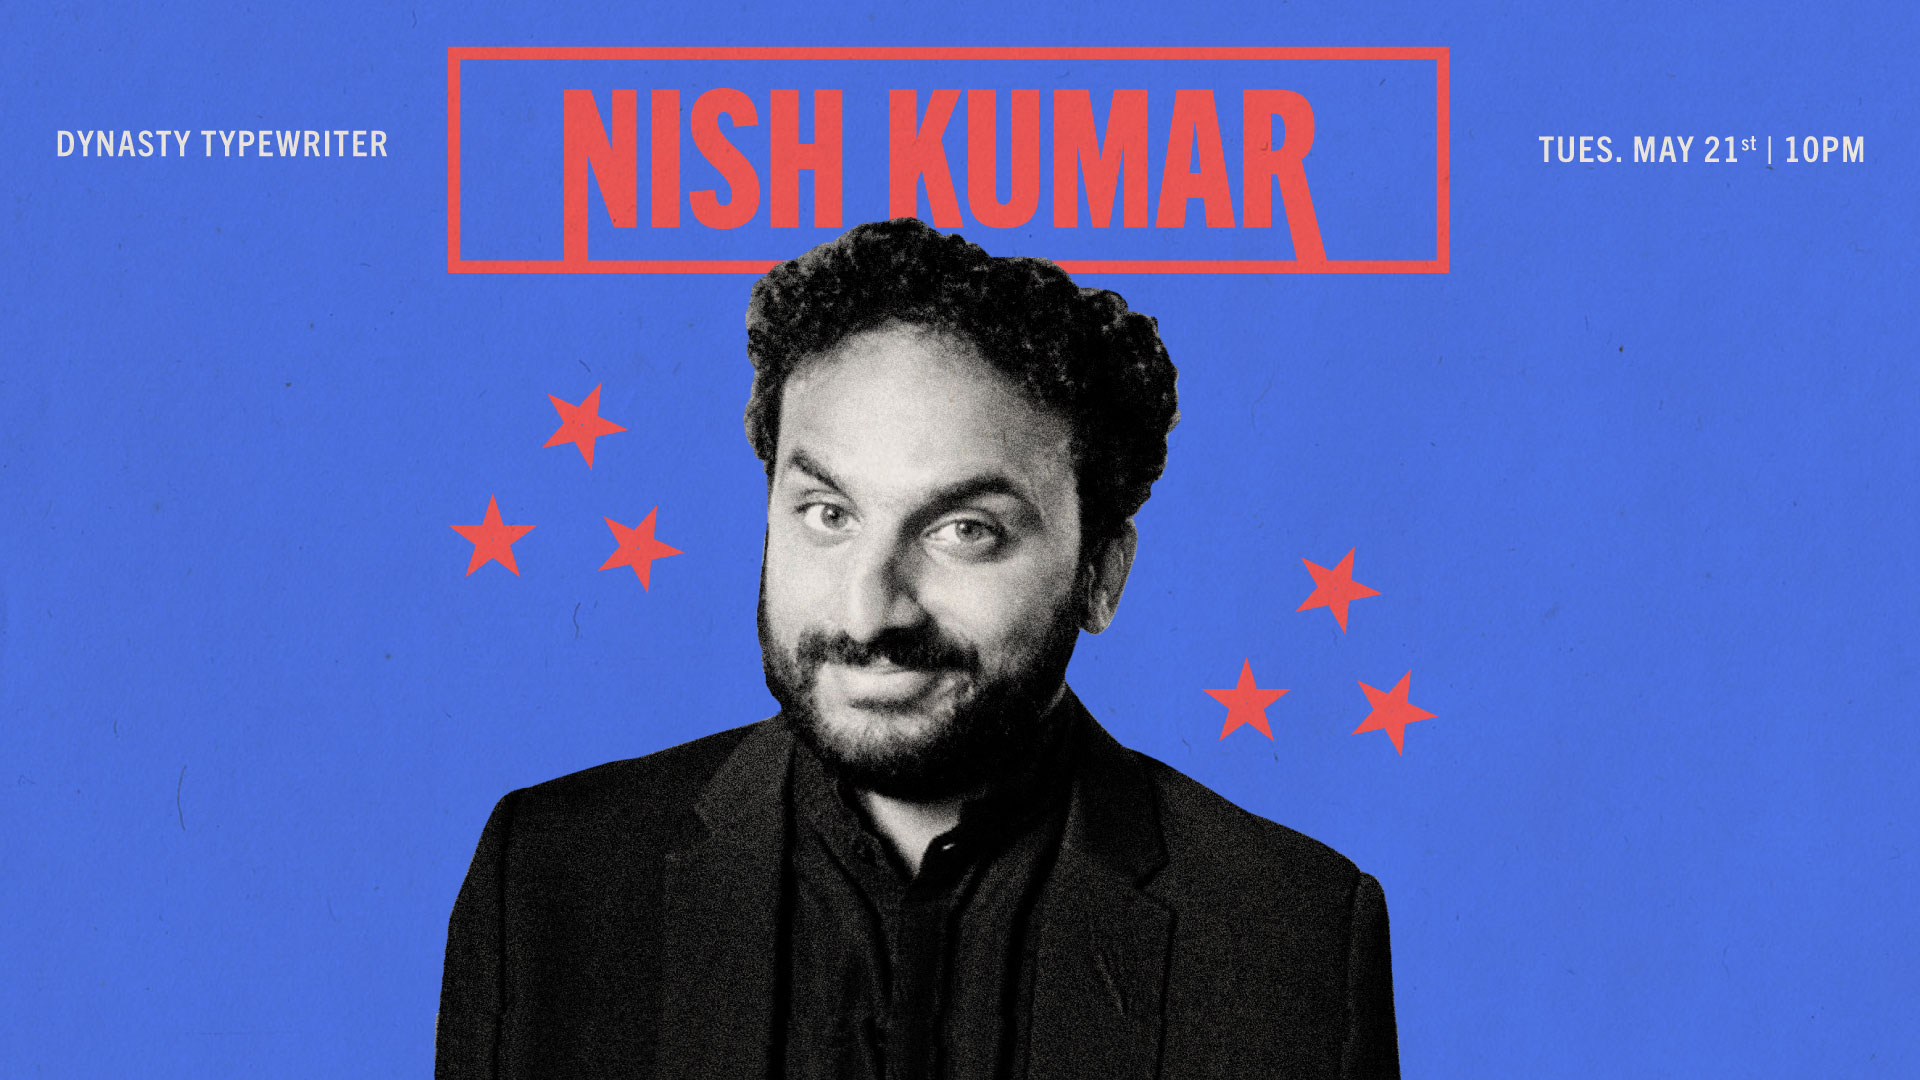 nish_kumar_may21_banner (1).jpg